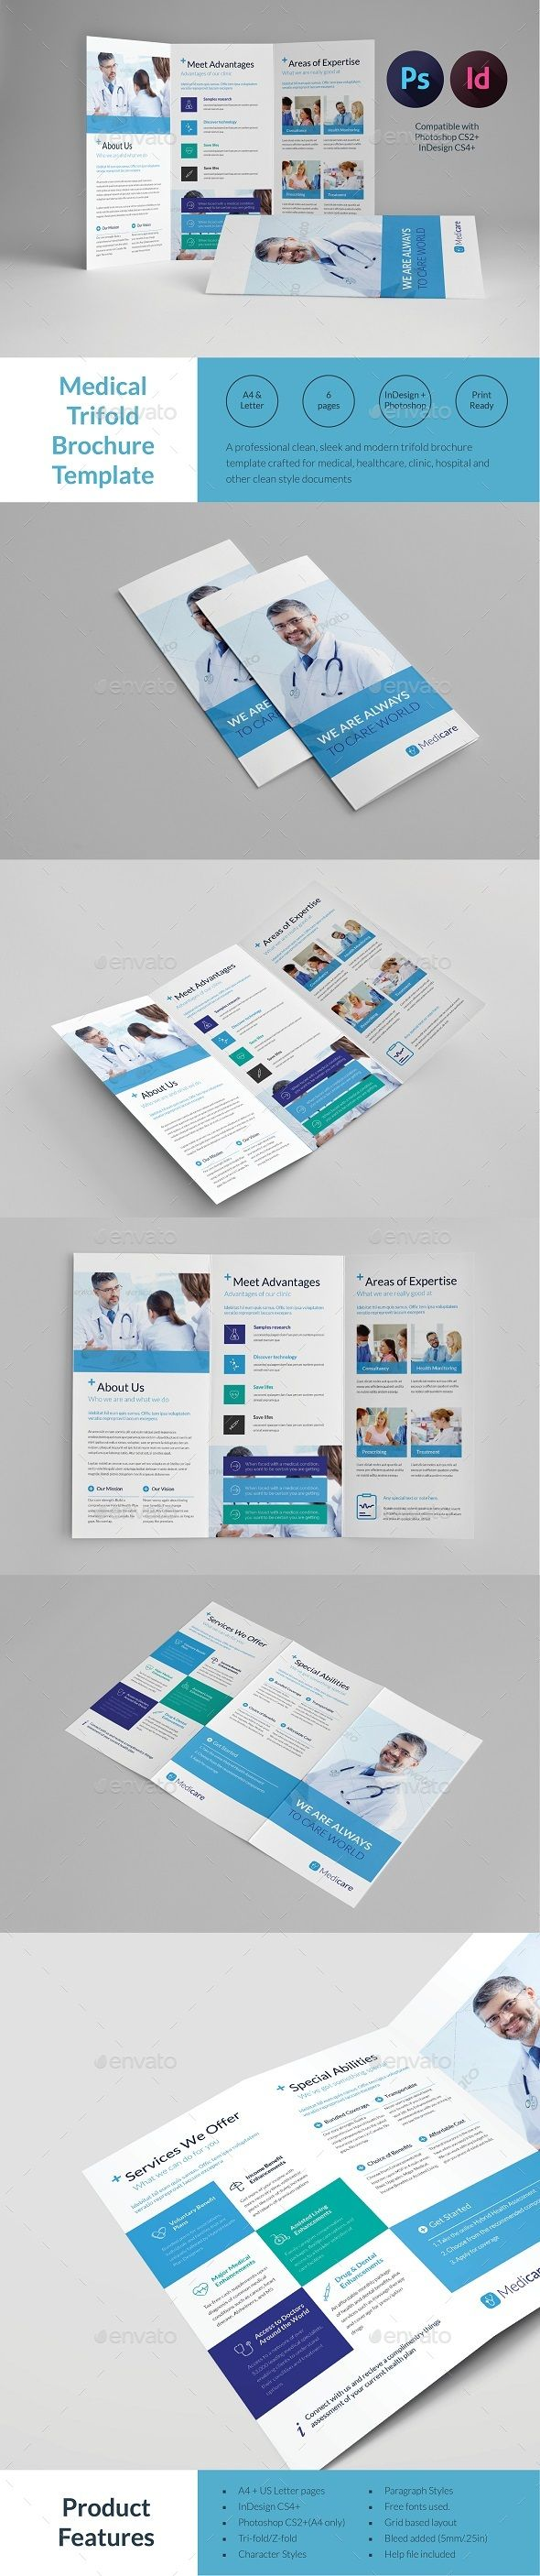 Medical Trifold Brochure Template Medical Brochure Brochure - Brochure template photoshop